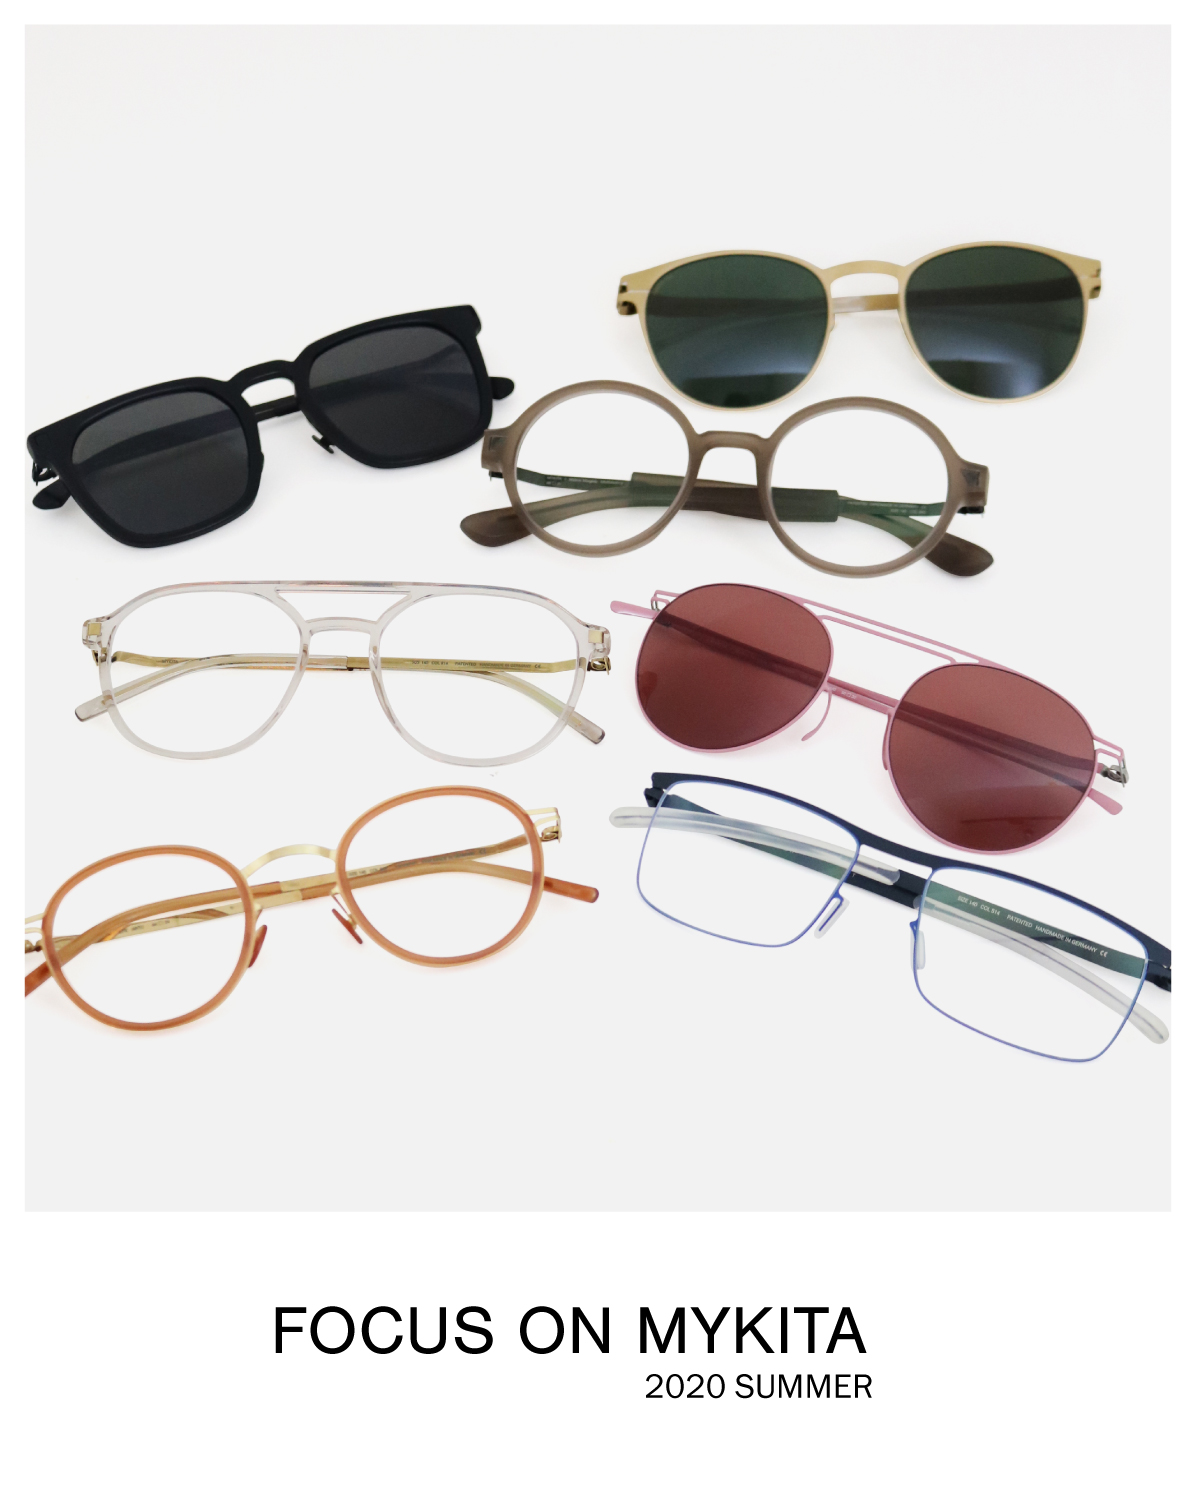 FOCUS ON MYKITA|2020 SUMMER